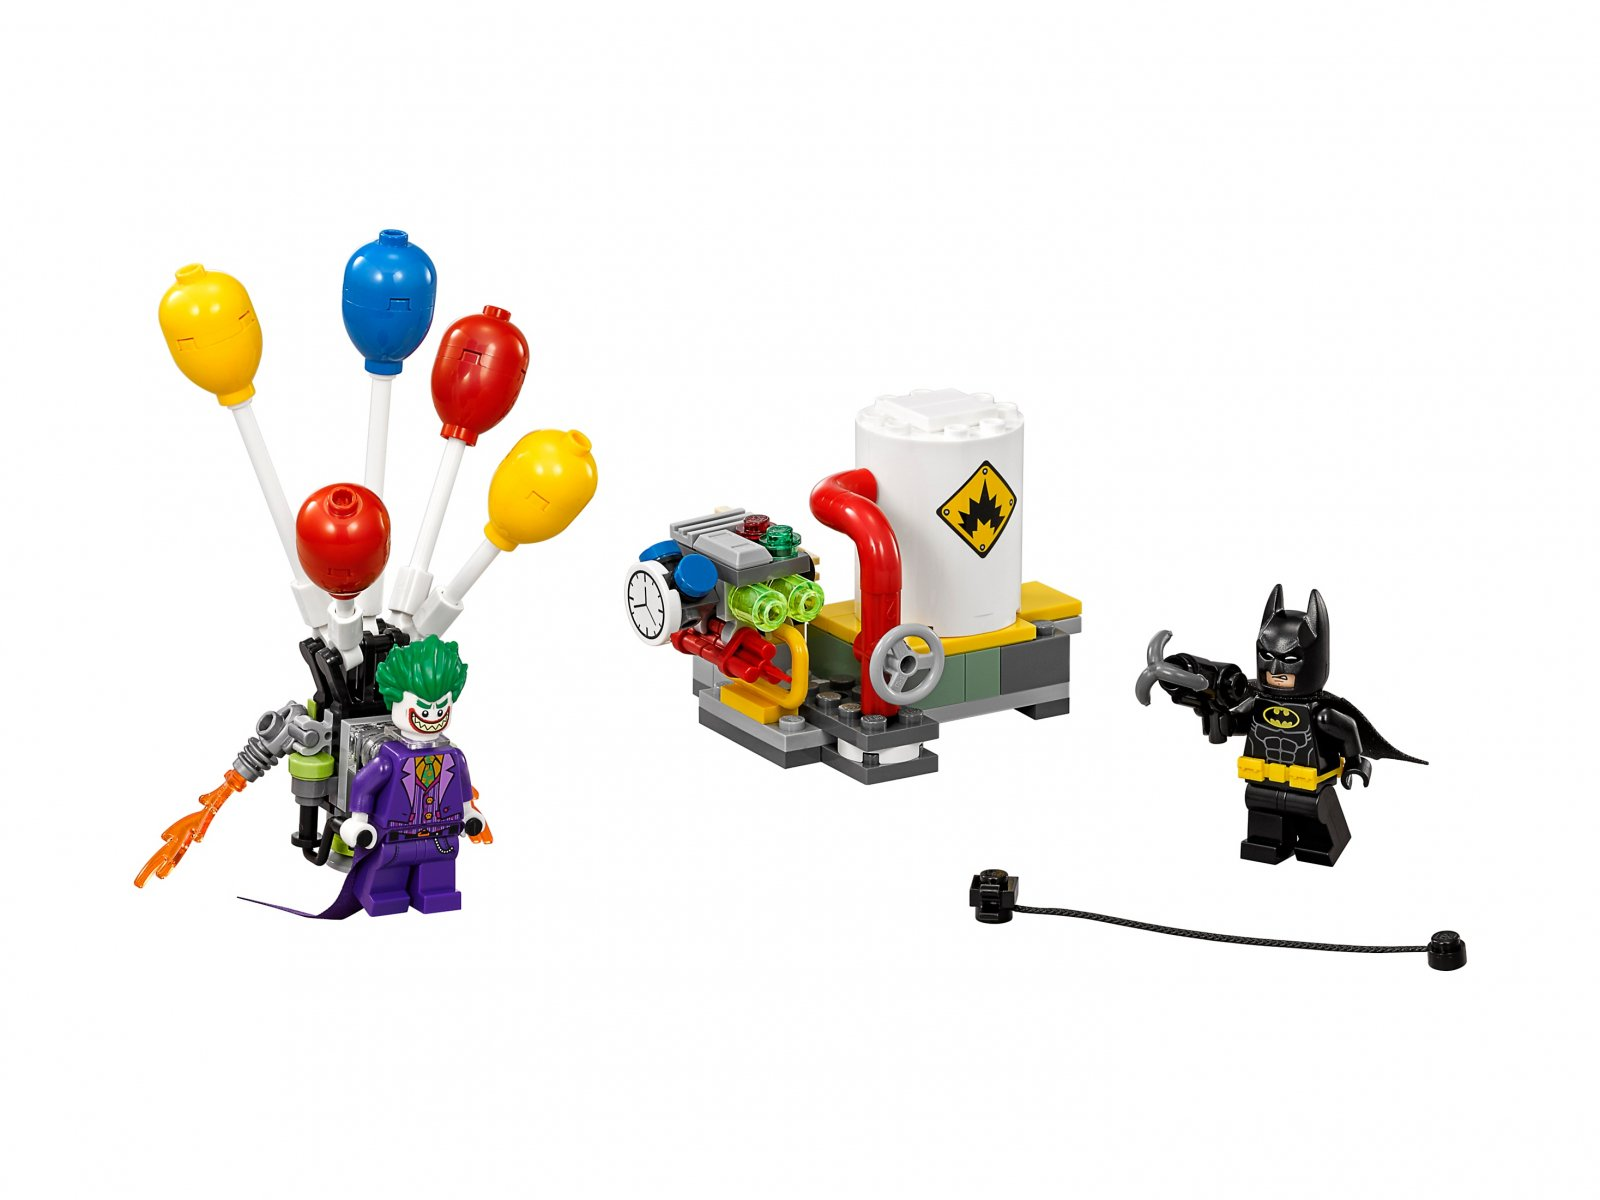 LEGO Batman Movie 70900 Balonowa ucieczka Jokera™